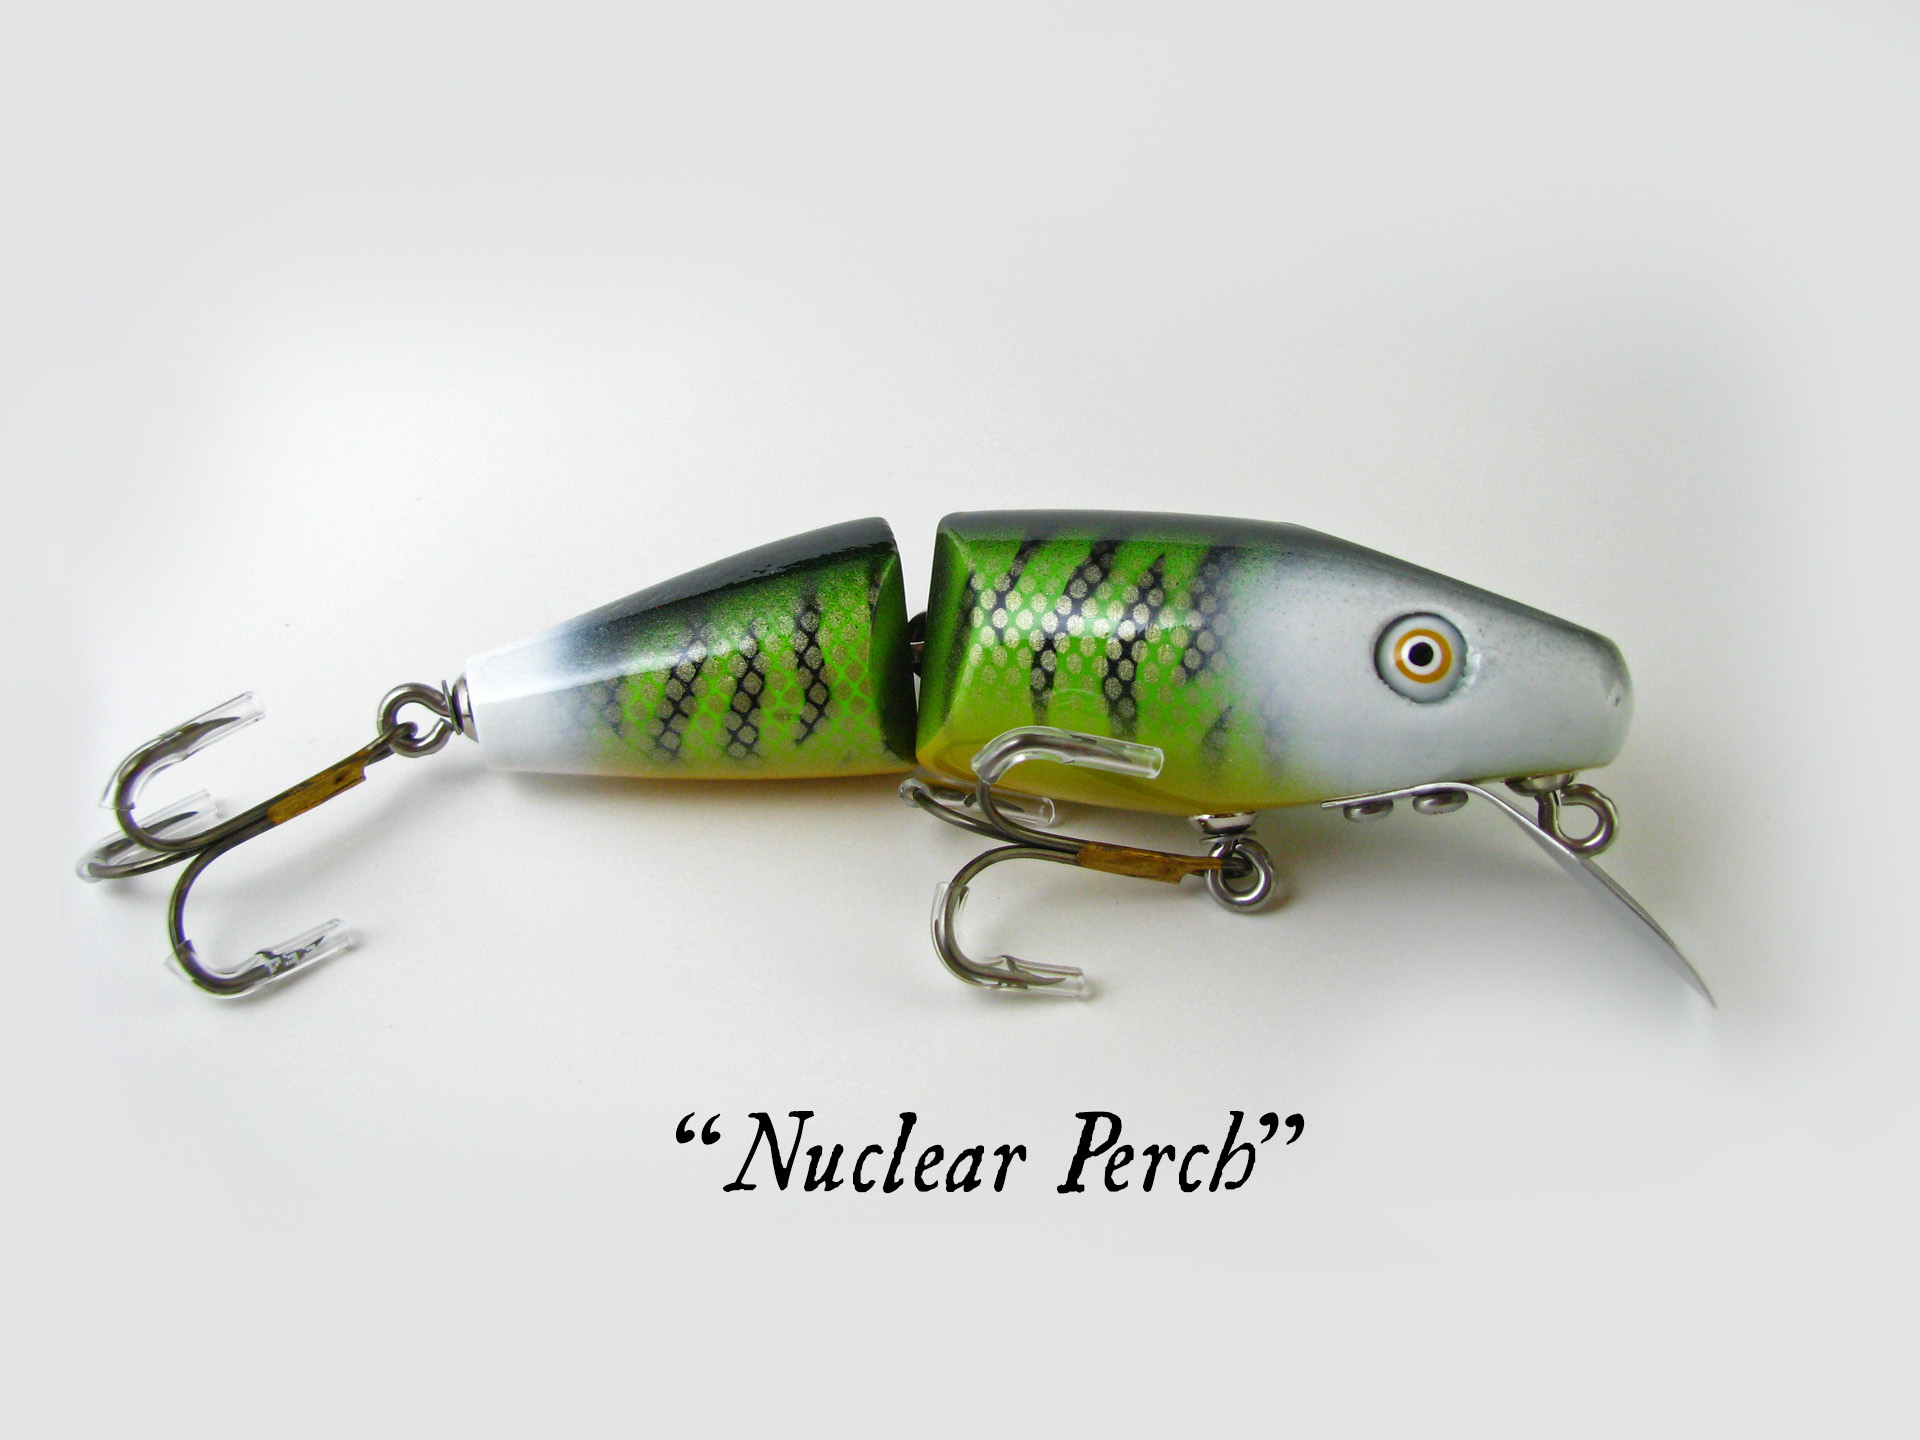 Super Shark_Nuclear Perch.jpg